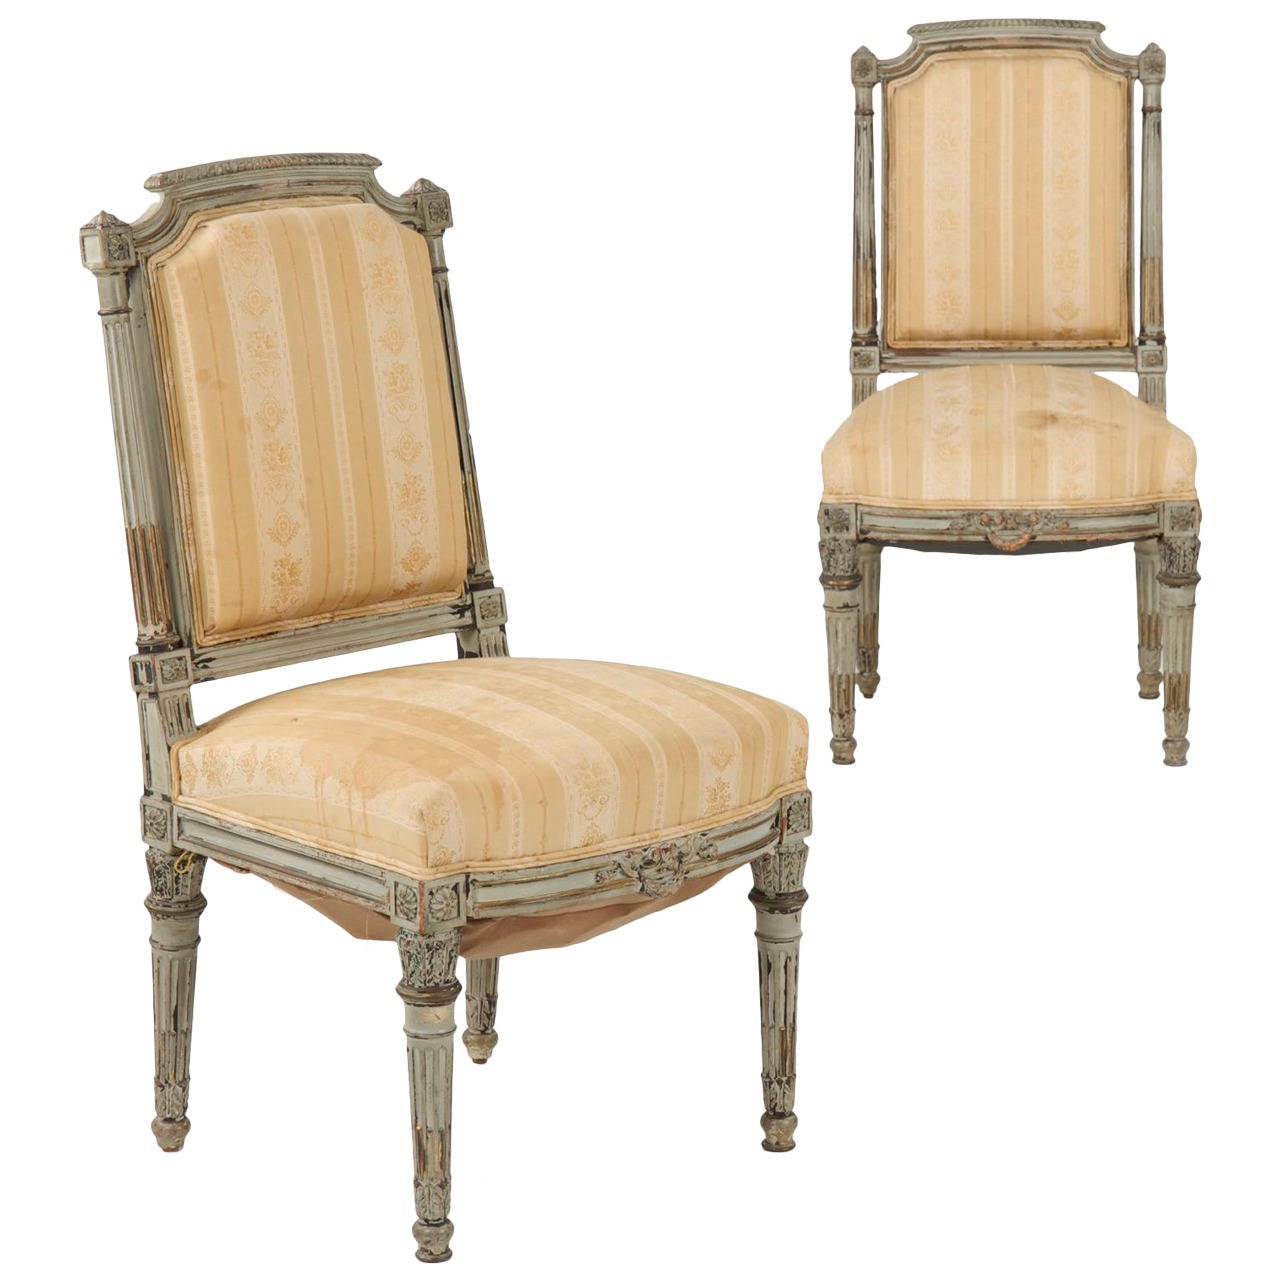 Pair of Antique French Louis XVI Style Gray Painted Side Chairs, 19th  Century 1 - Pair Of Antique French Louis XVI Style Gray Painted Side Chairs